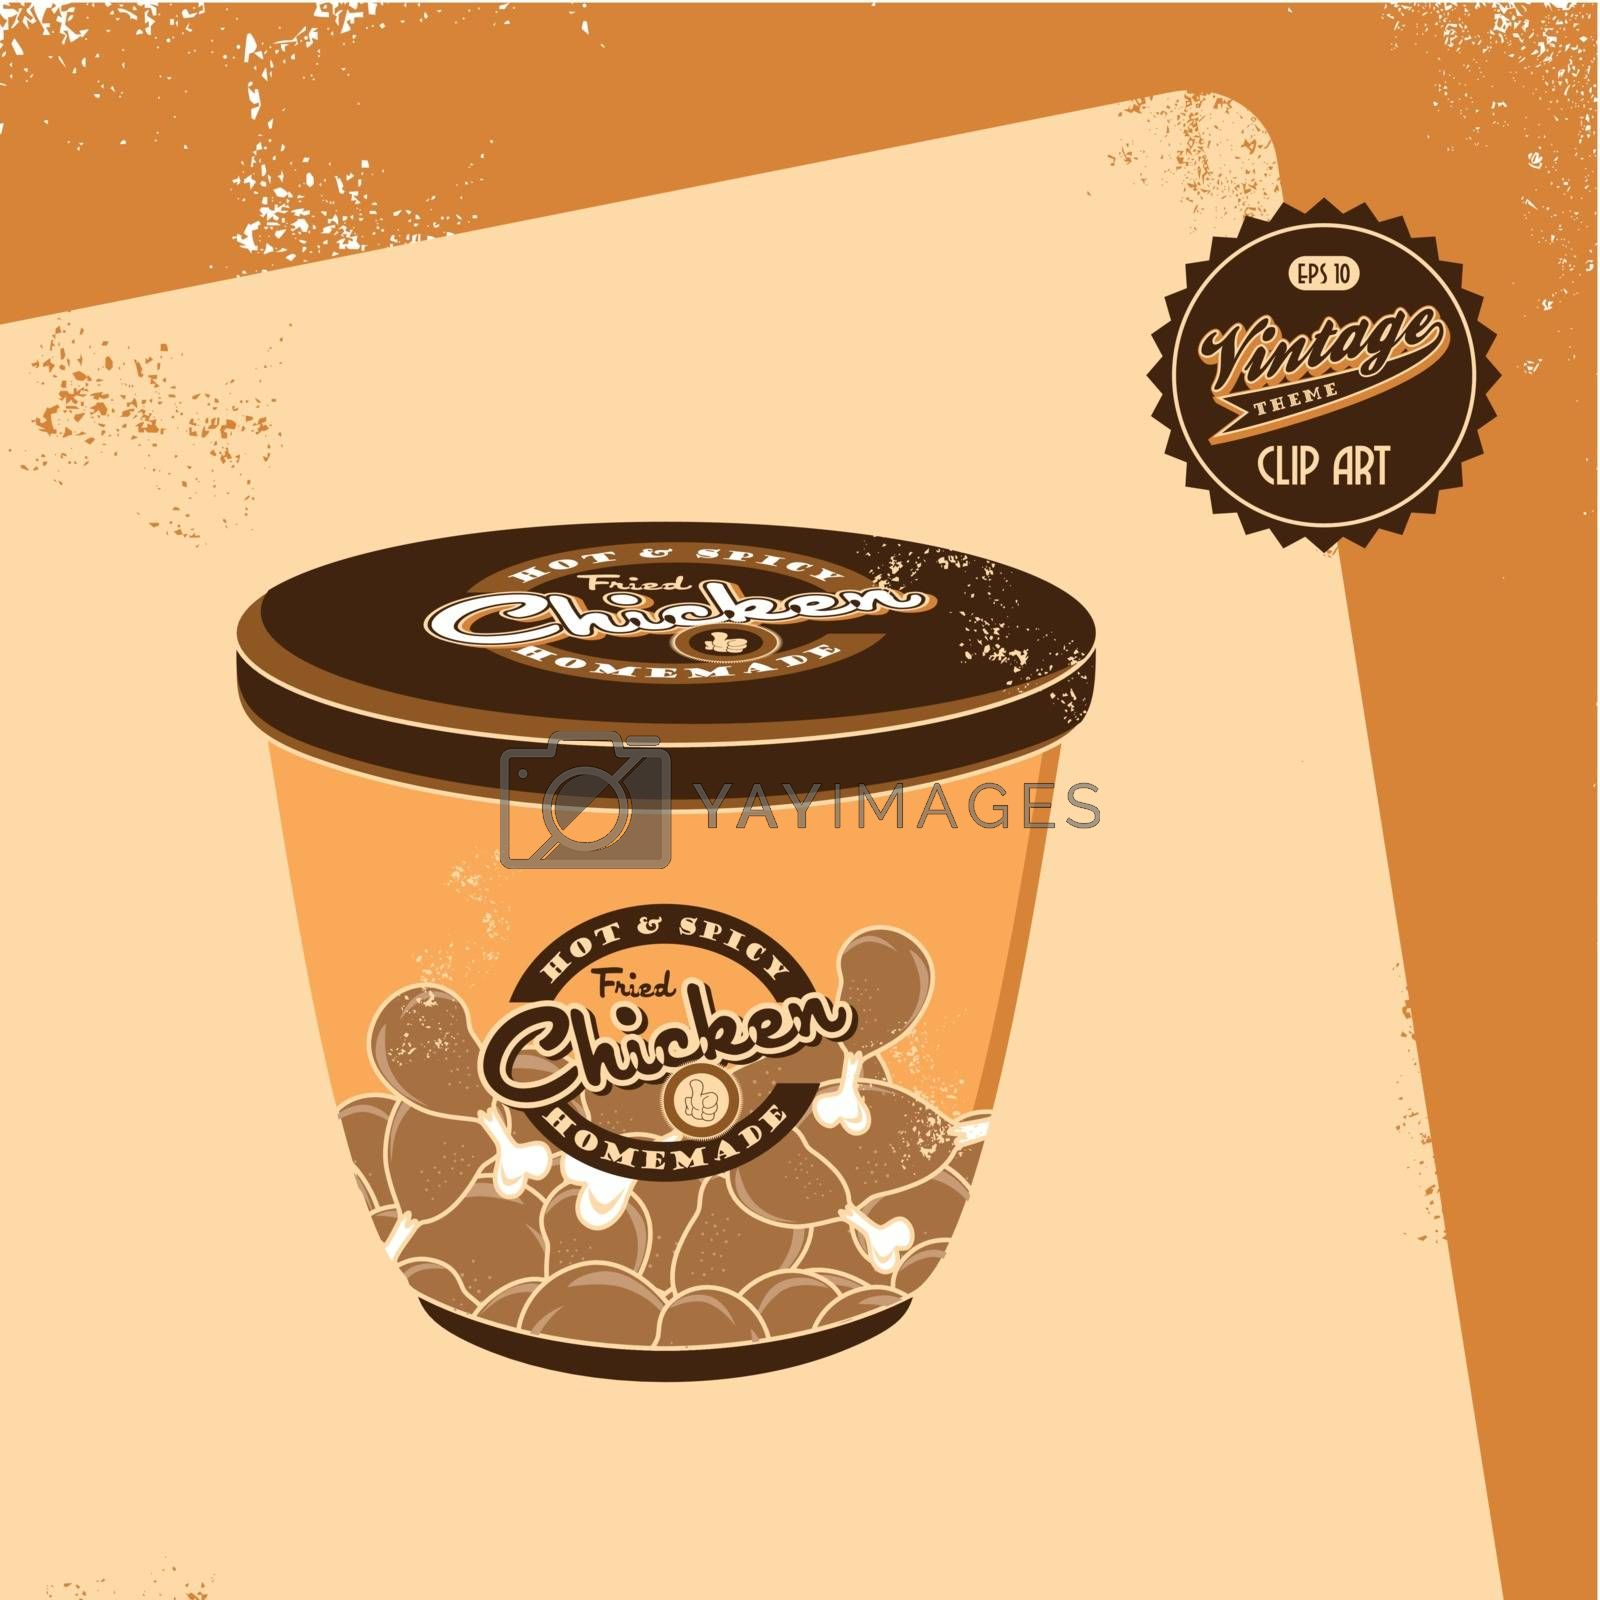 editable food and drink restaurant theme vector graphic art design illustration